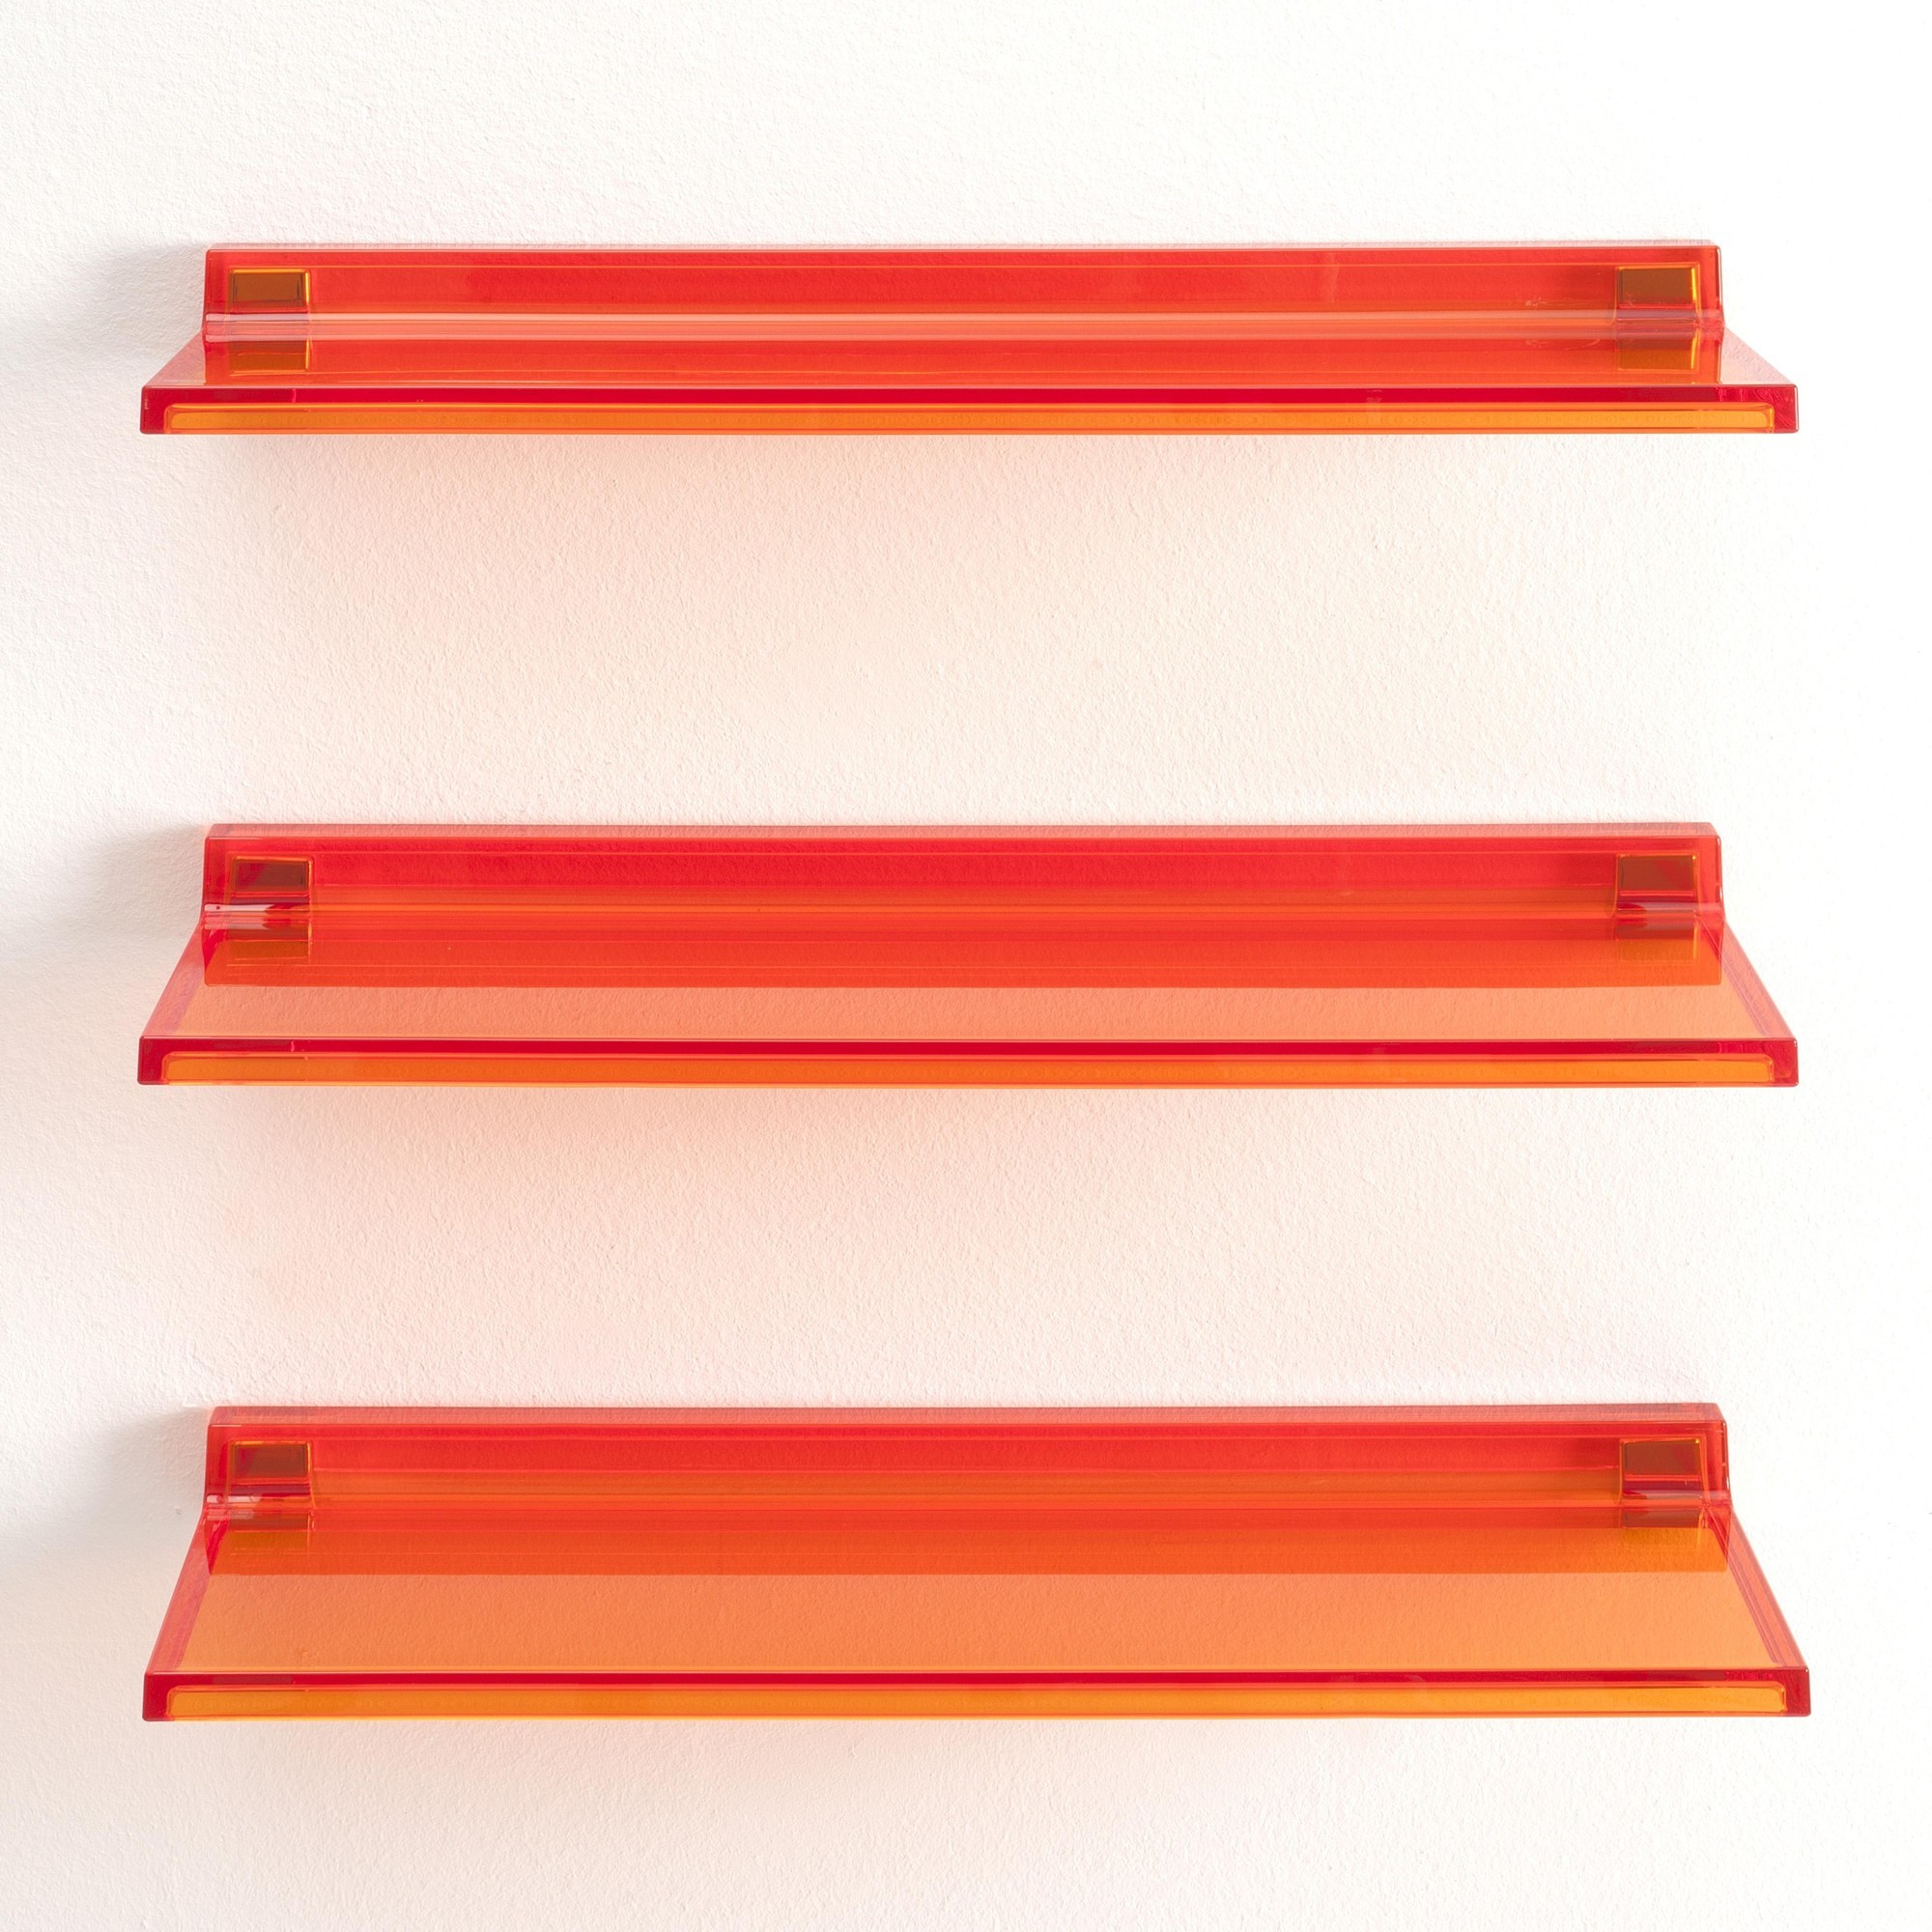 Kartell By Laufen Shelfish Wall Shelf Ambientedirect